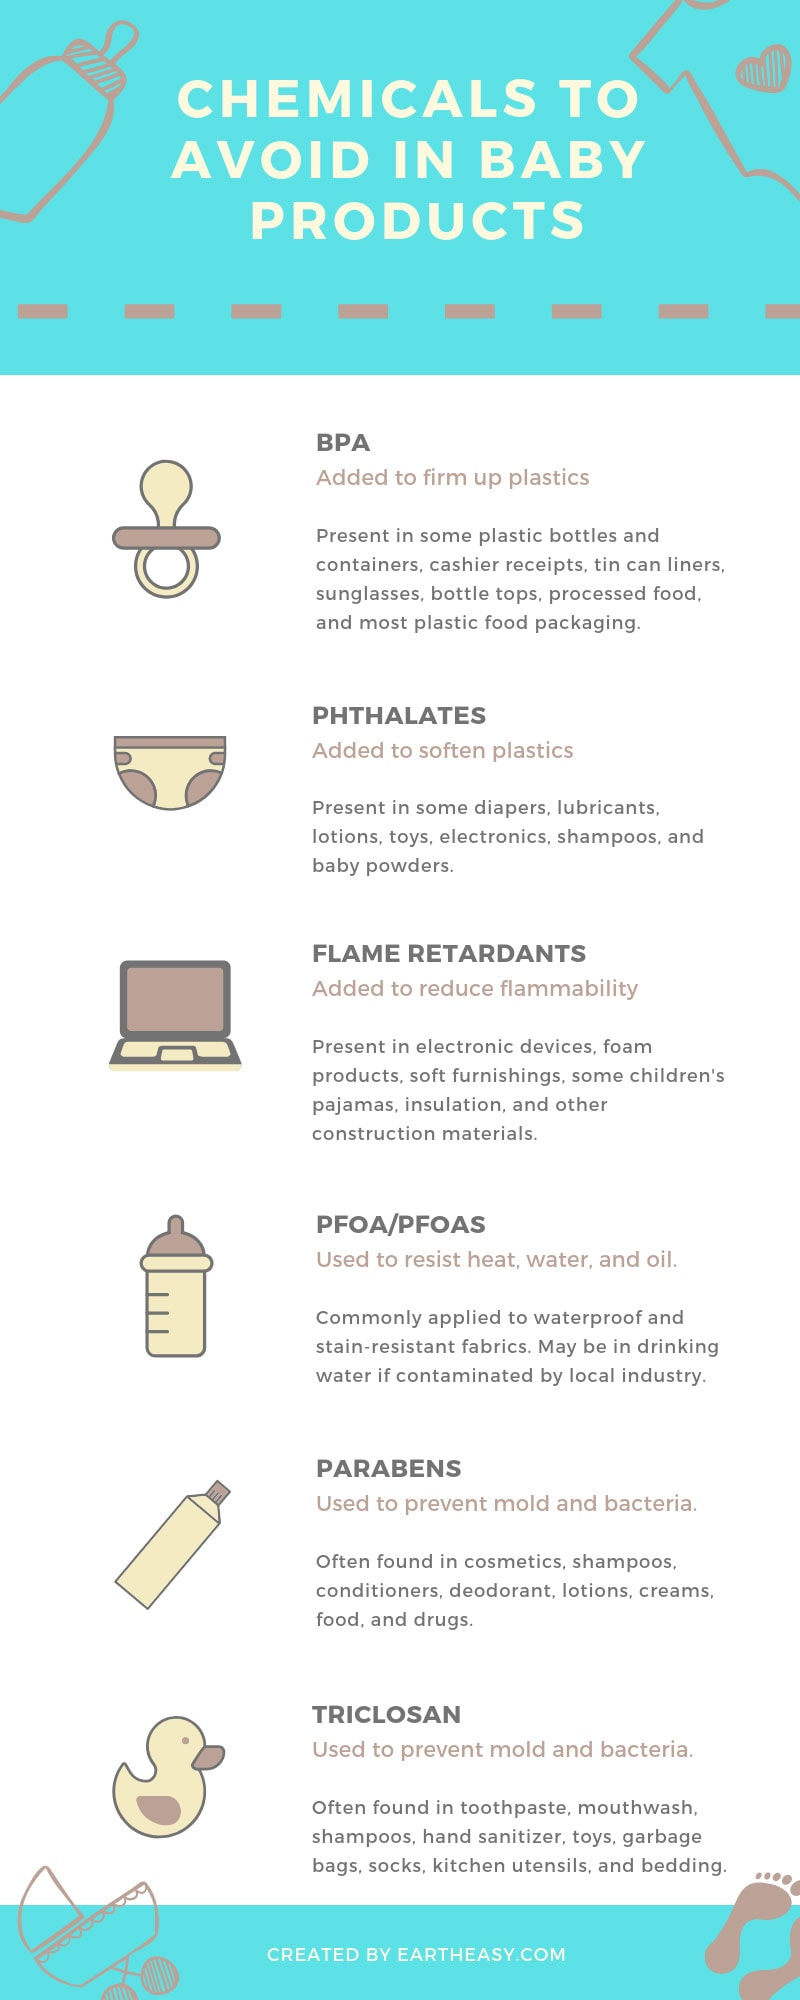 Chemicals to avoid in baby products infographic